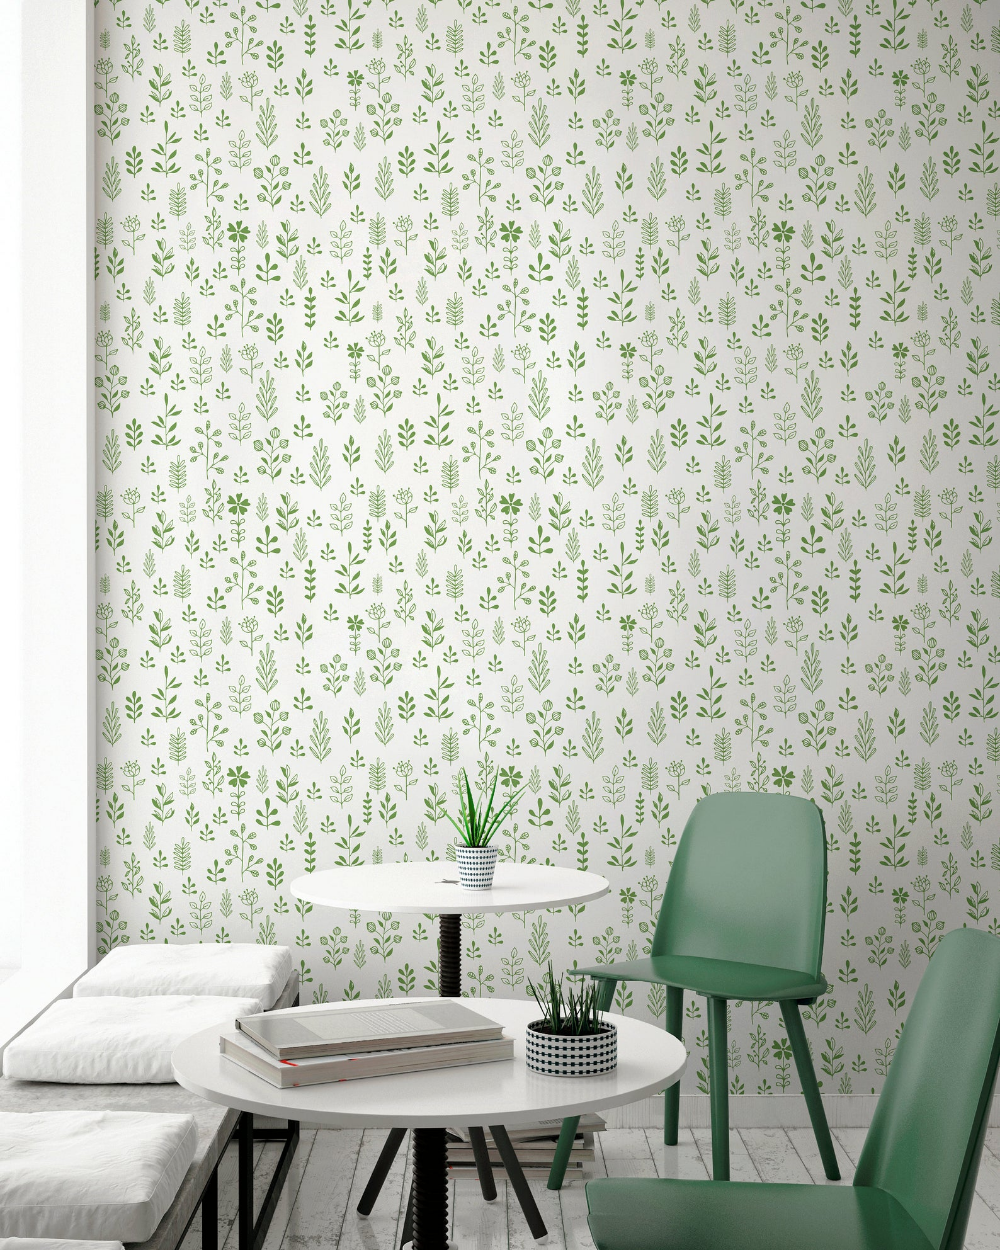 Removable Wallpaper Scandinavian Wallpaper Temporary Wallpaper Minimalistic Wallpaper Peel And Stick Wallpaper Wall Paper Boho A365 In 2020 Scandinavian Wallpaper Removable Wallpaper Peel And Stick Wallpaper